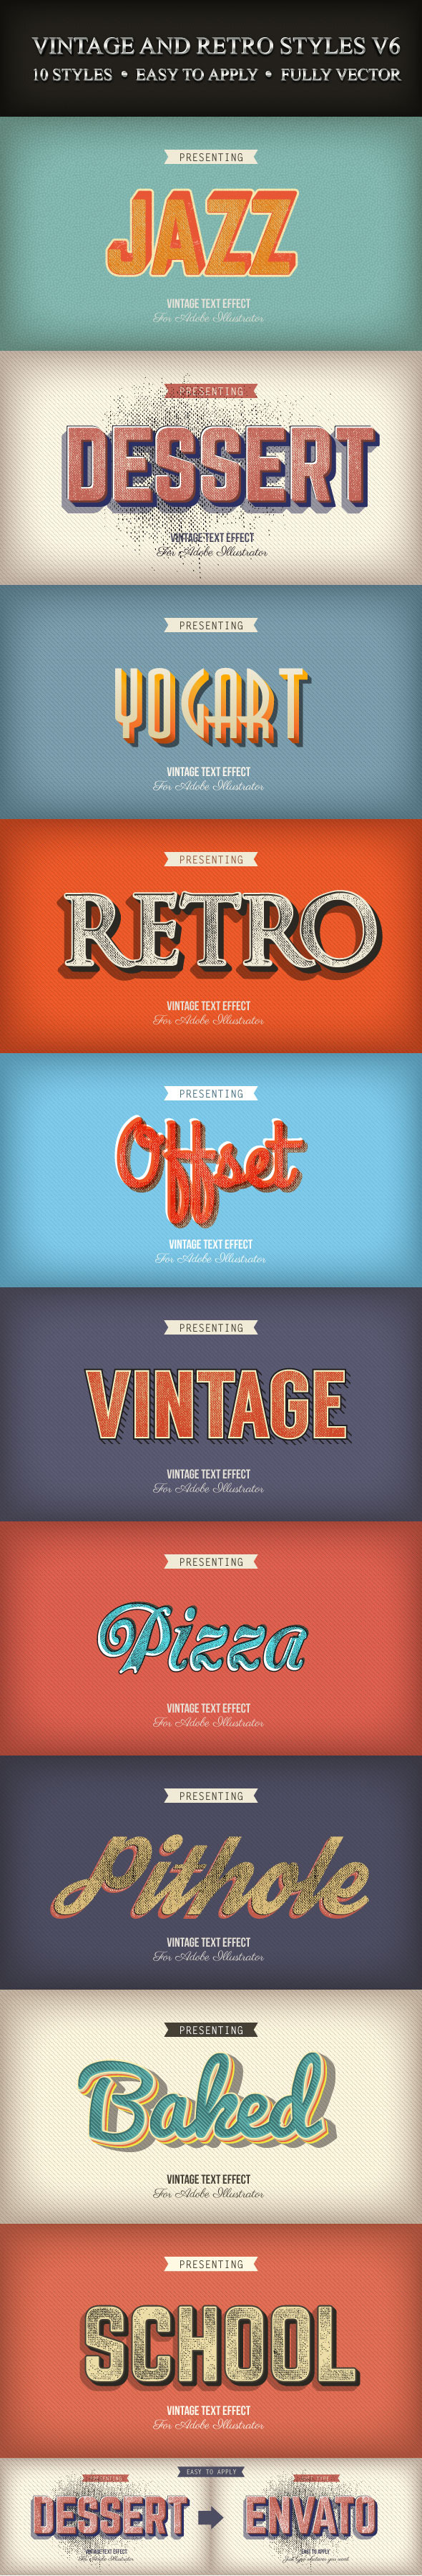 GraphicRiver Vintage and Retro Styles V6 9184160